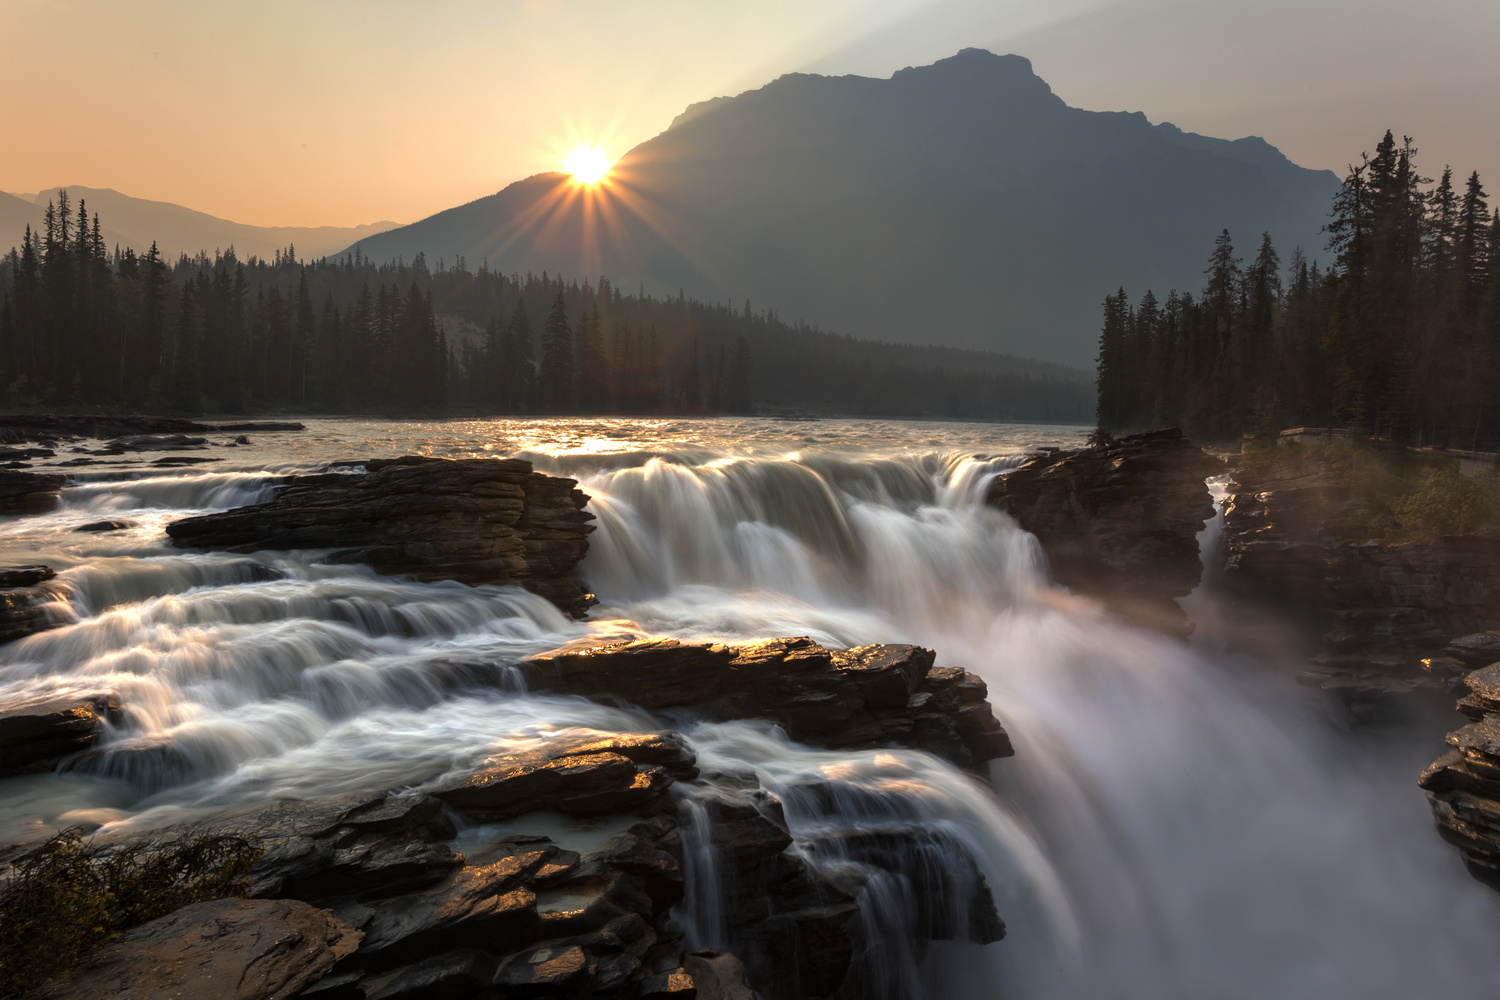 Hazy Sunrise at Athabasca Falls by Nick Souvall